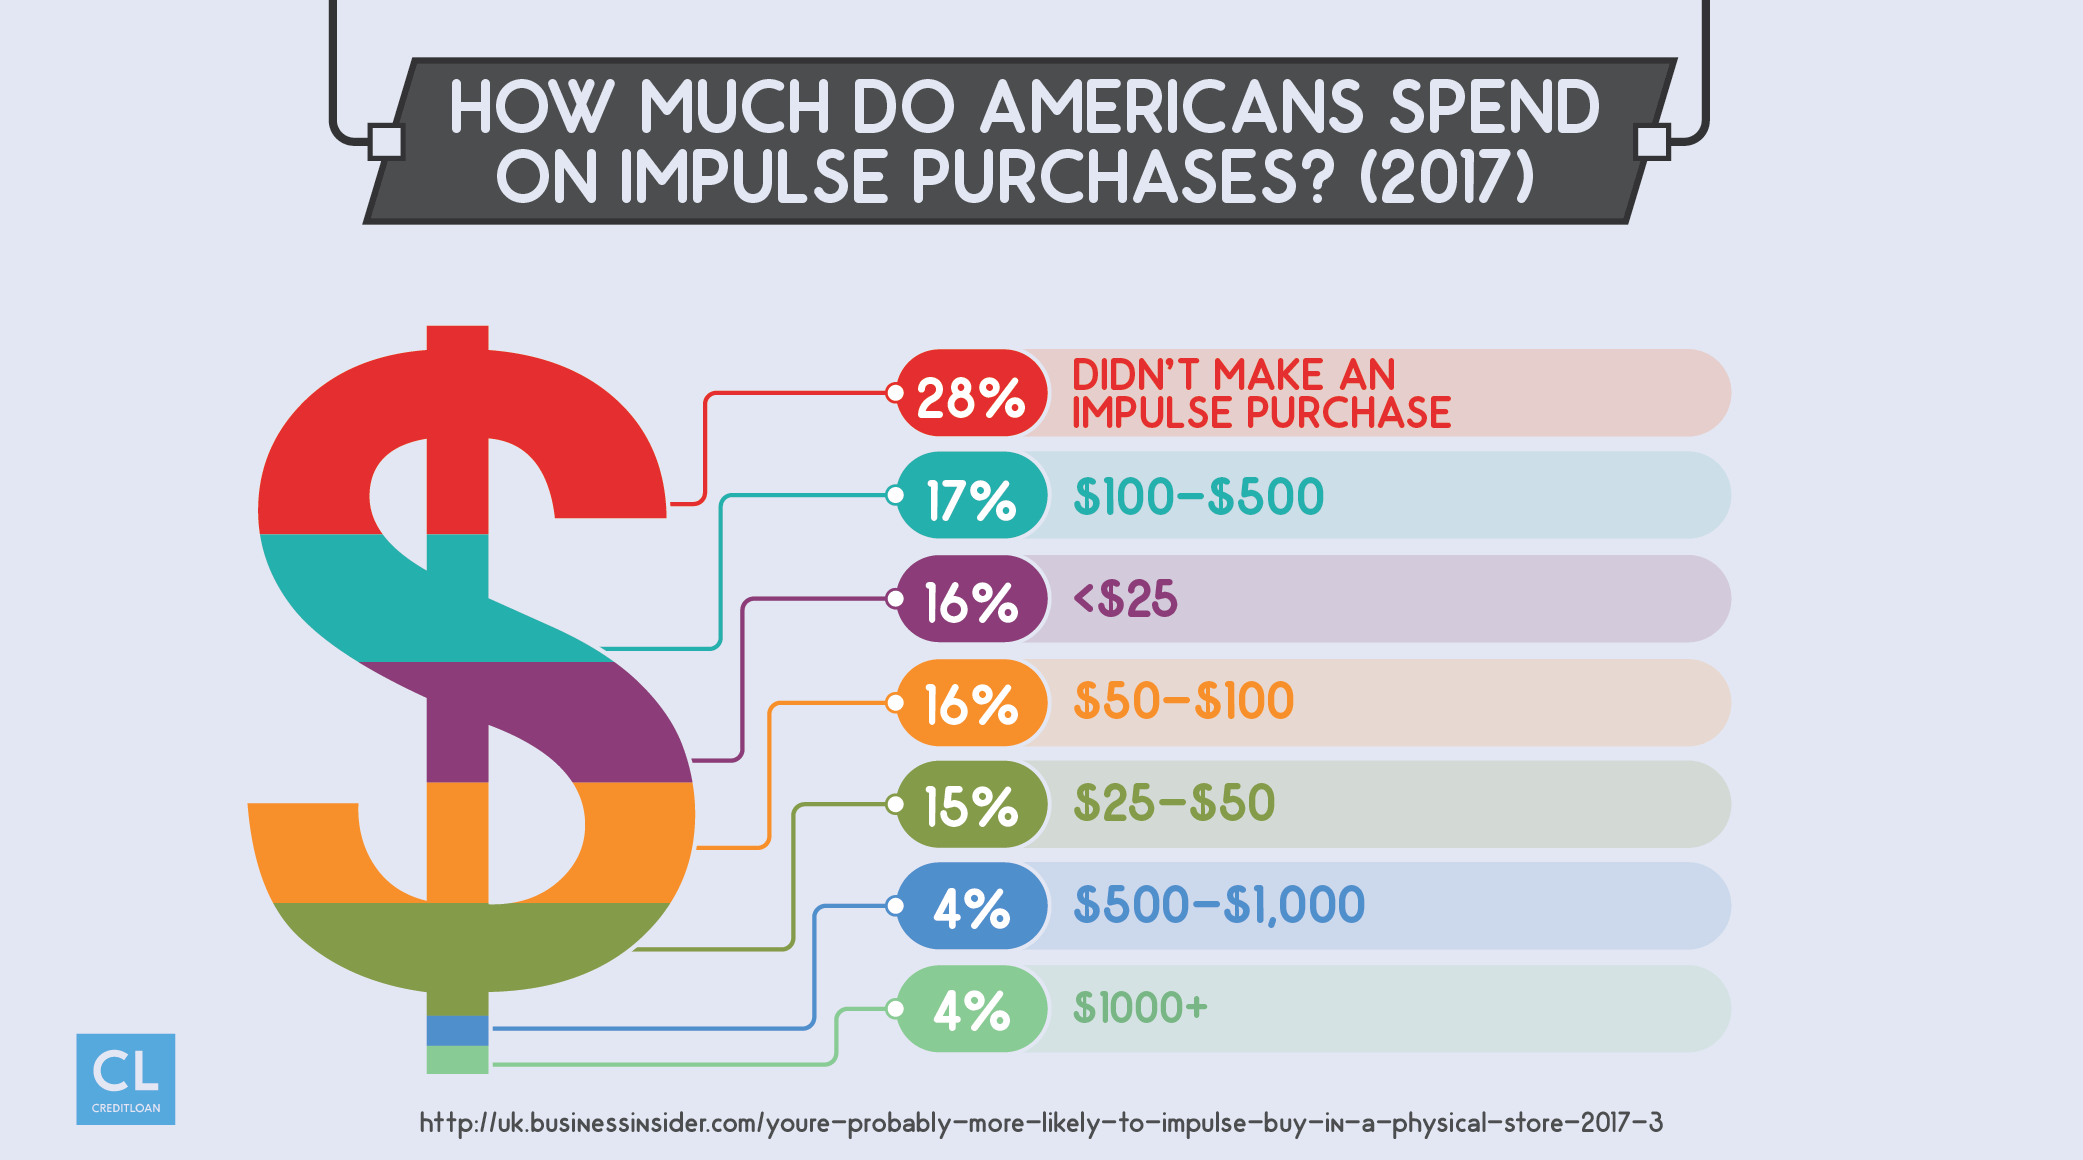 How Much Do Americans Spend On Impulse Purchases?